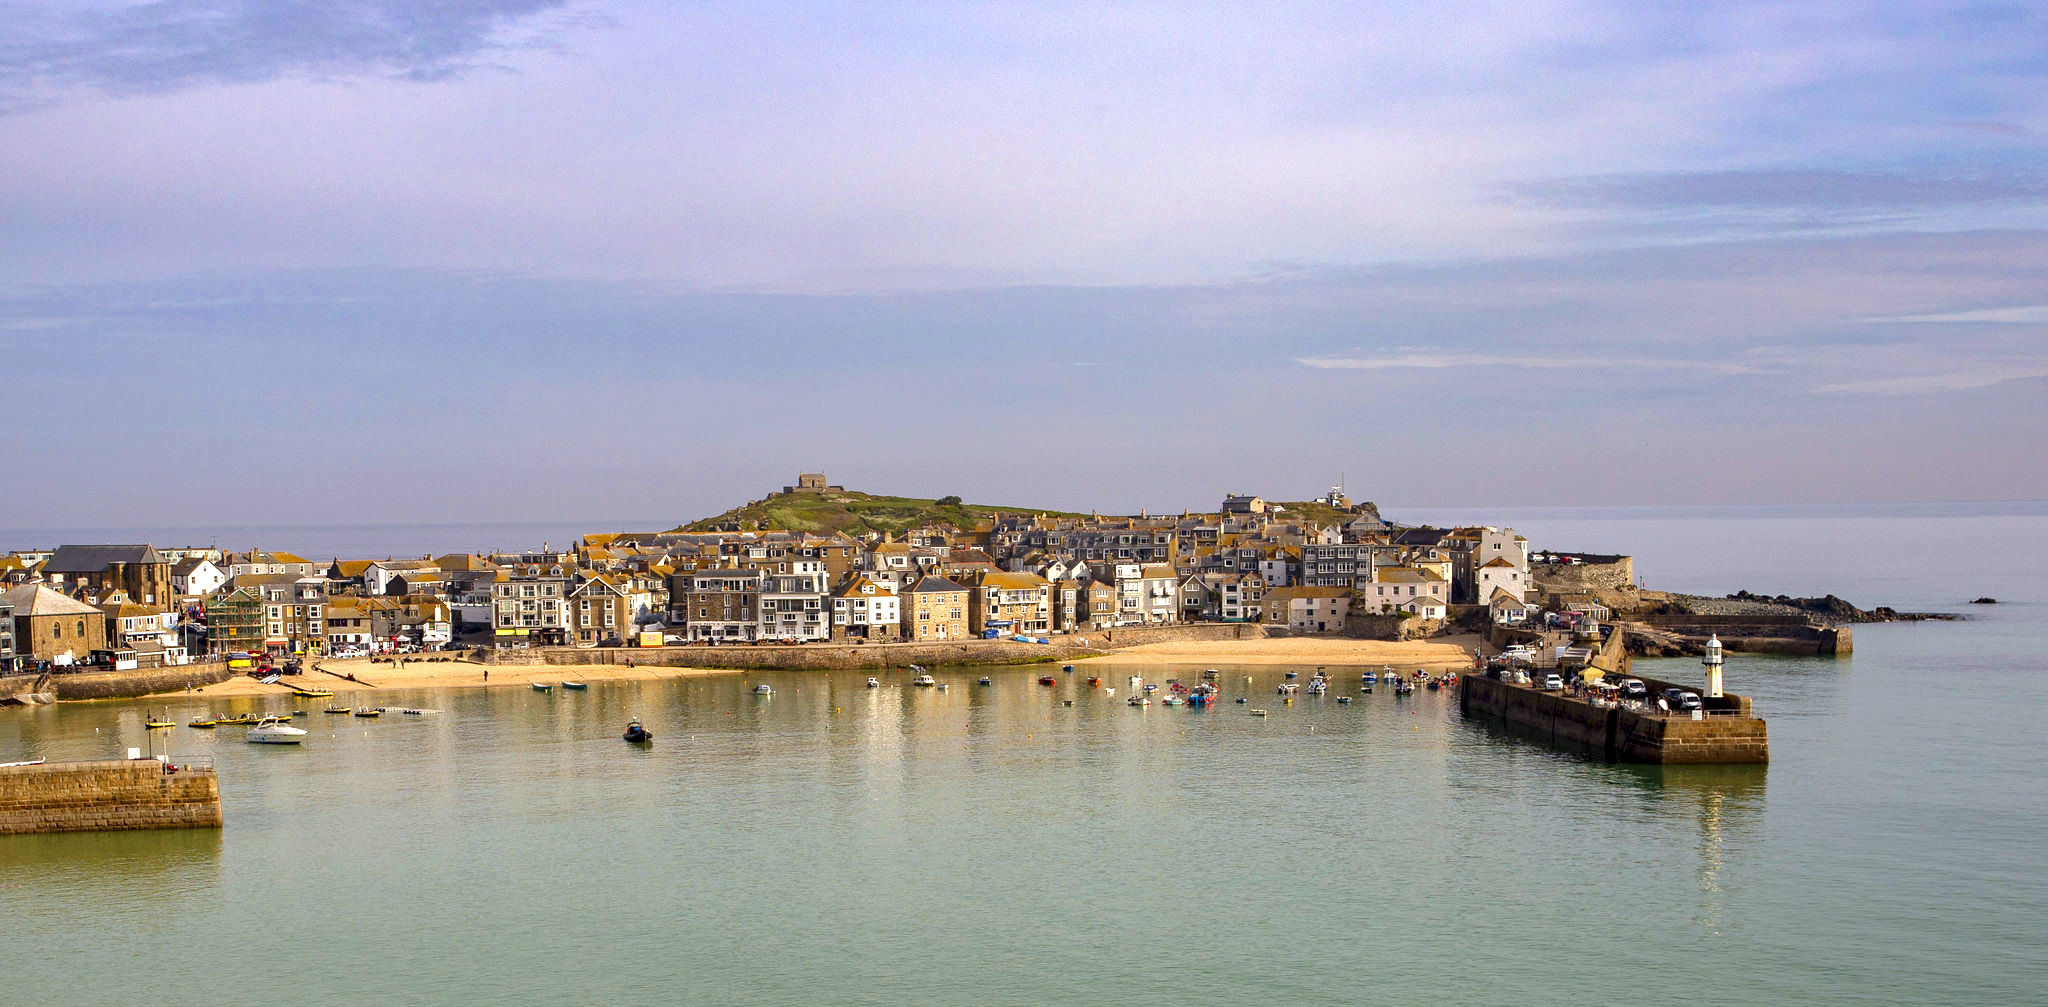 Morning tranquility Cornish harbour of St Ives by Steve Mantell.jpg